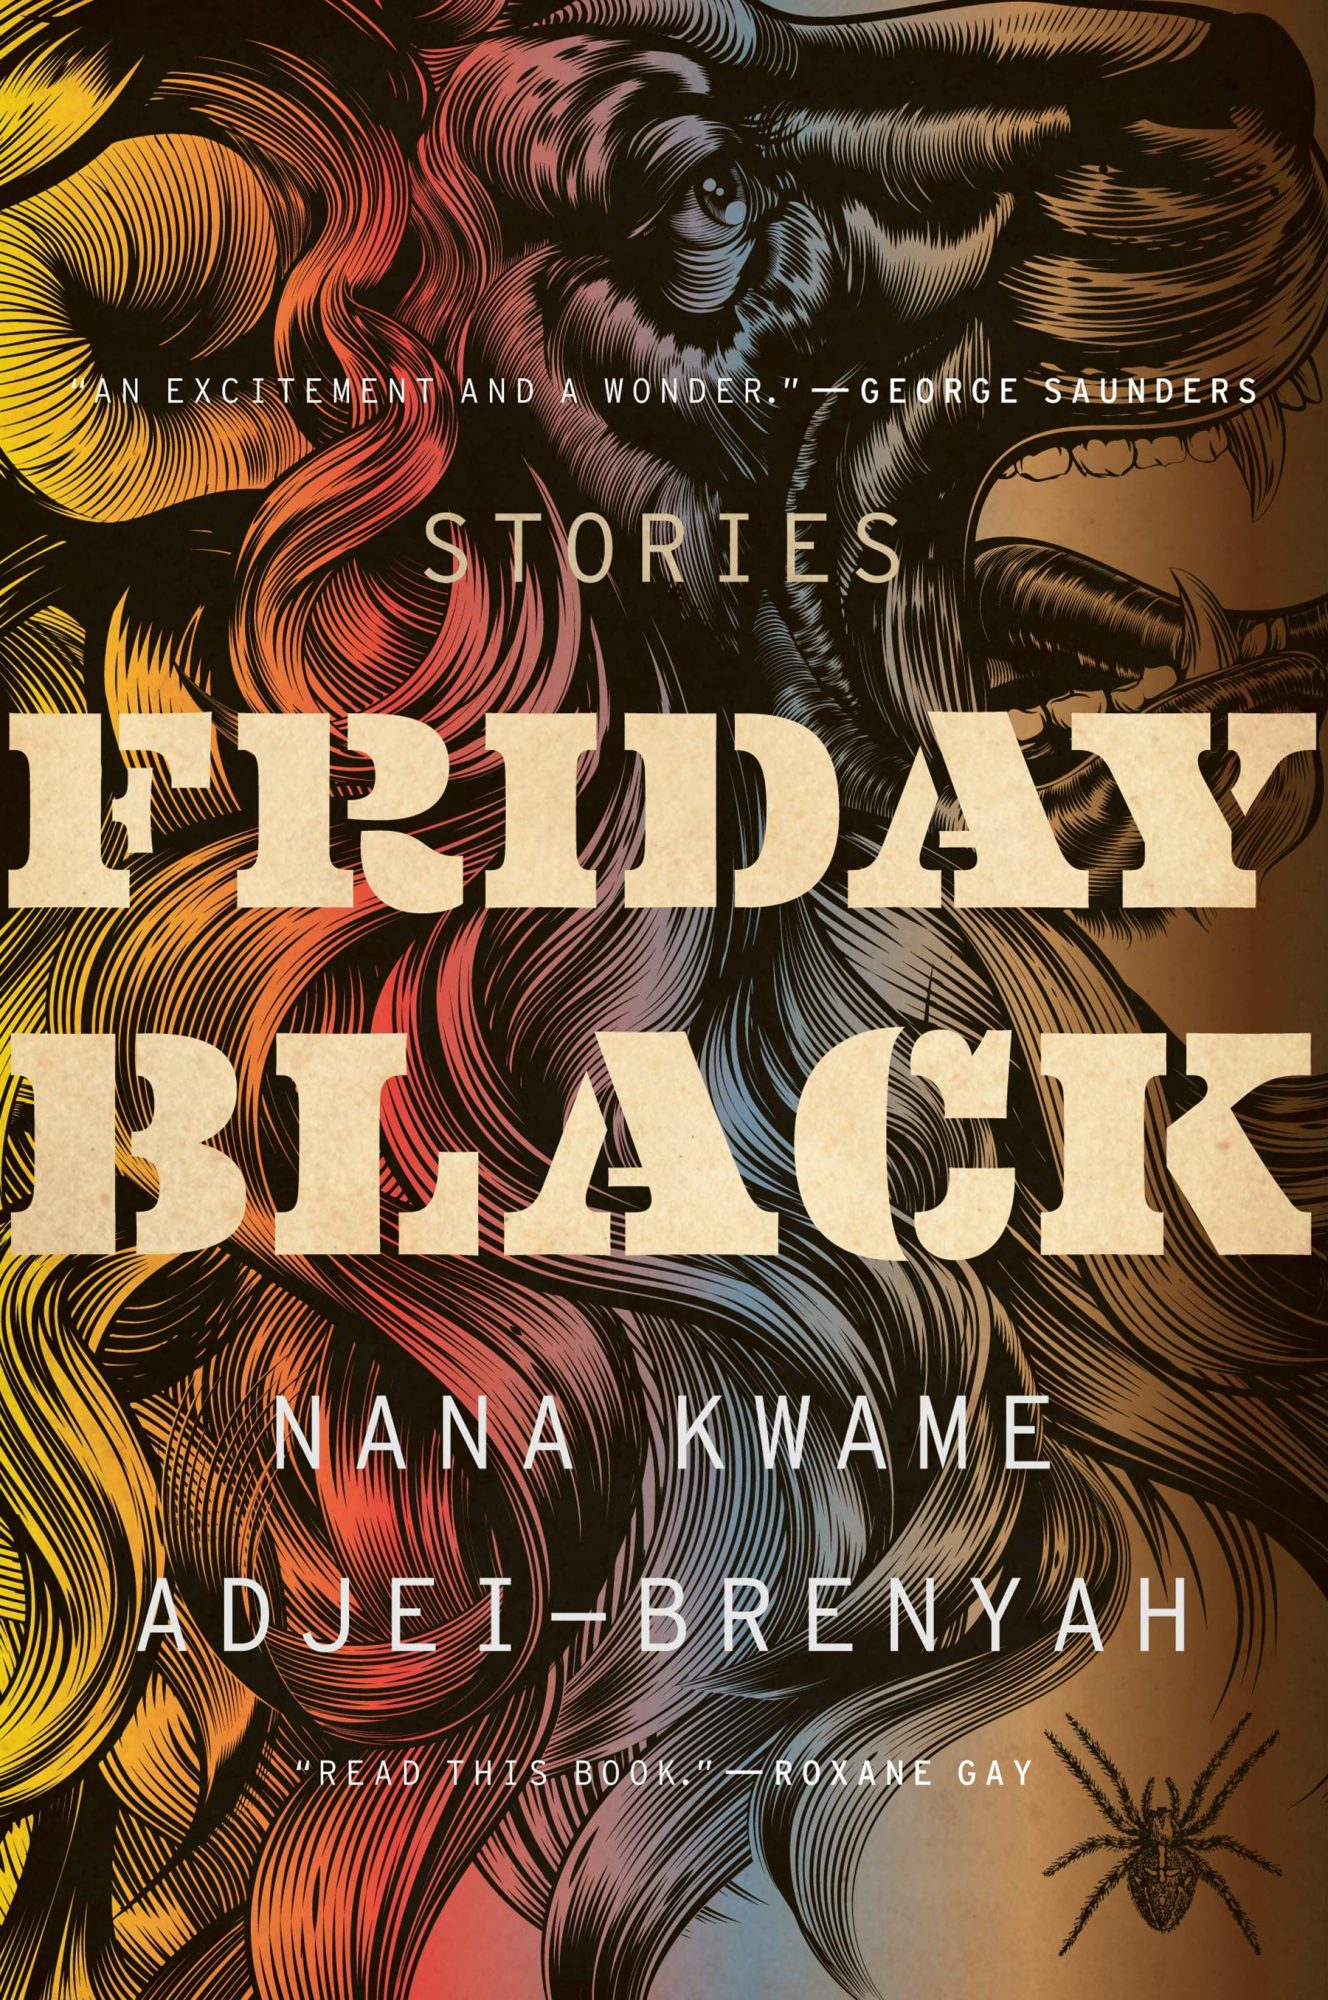 Friday Black by Kwame Adjei-BrenyahCredit: Mariner Books